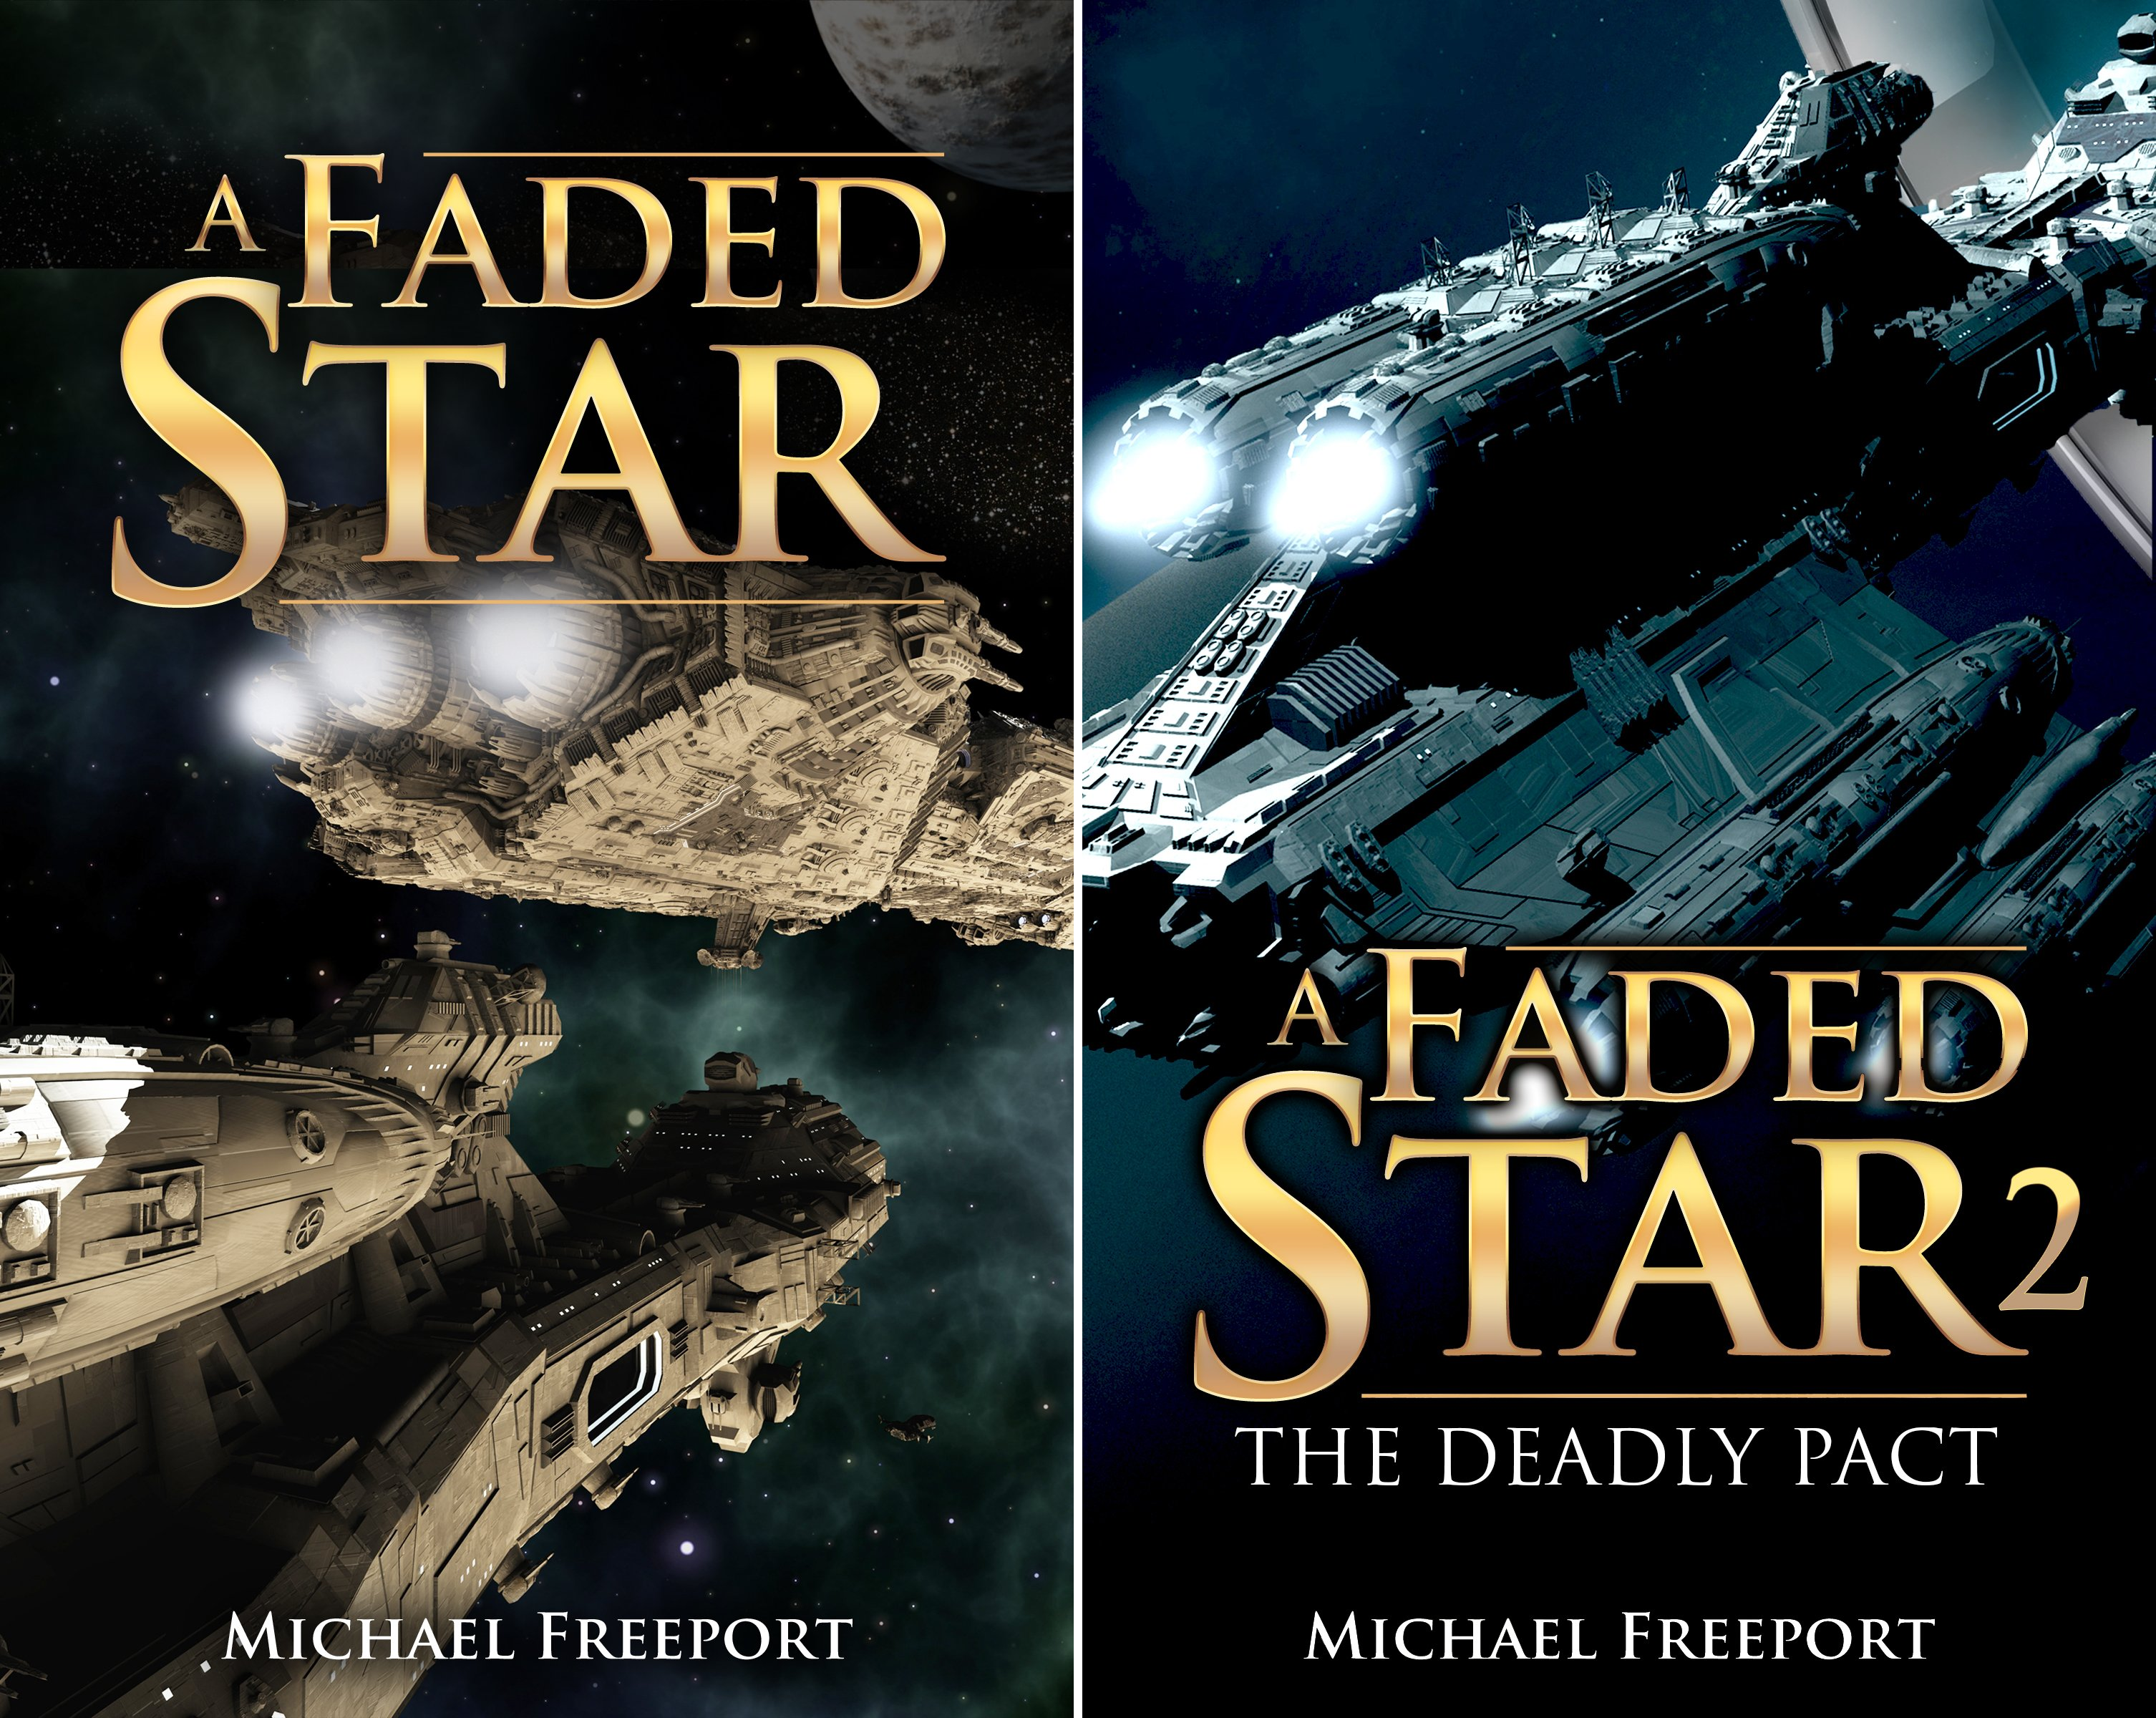 A Faded Star (2 Book Series)